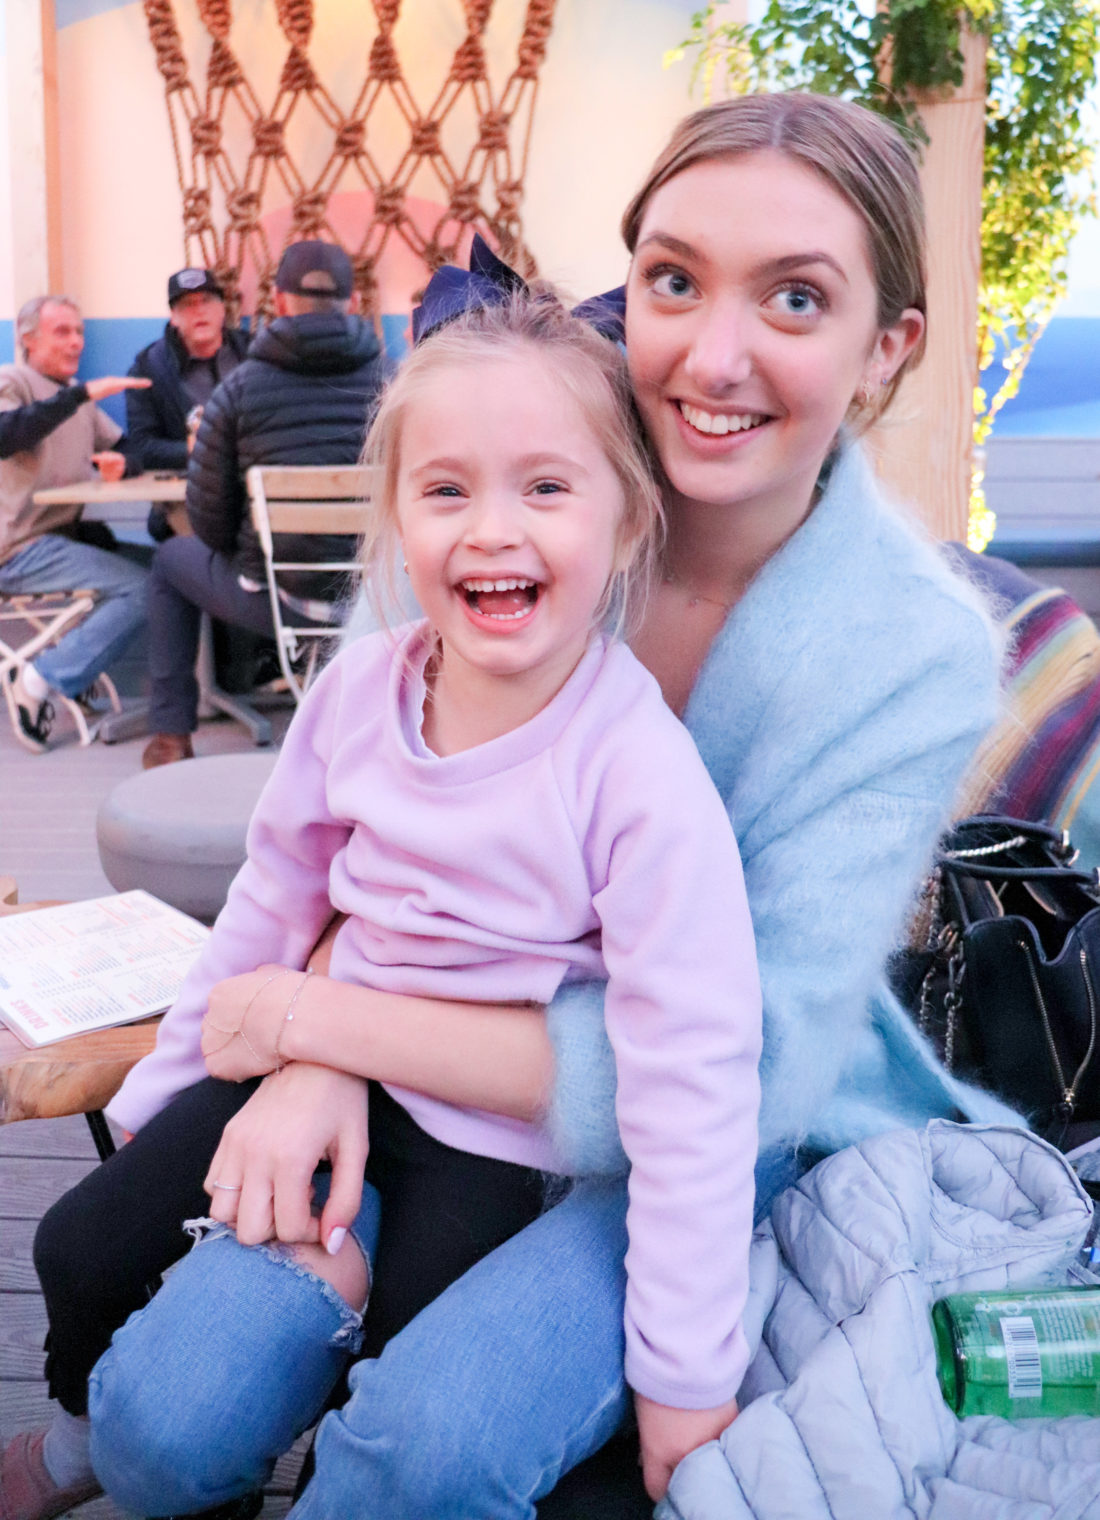 Eva Amurri Martino shares images from her family trip to Los Angeles